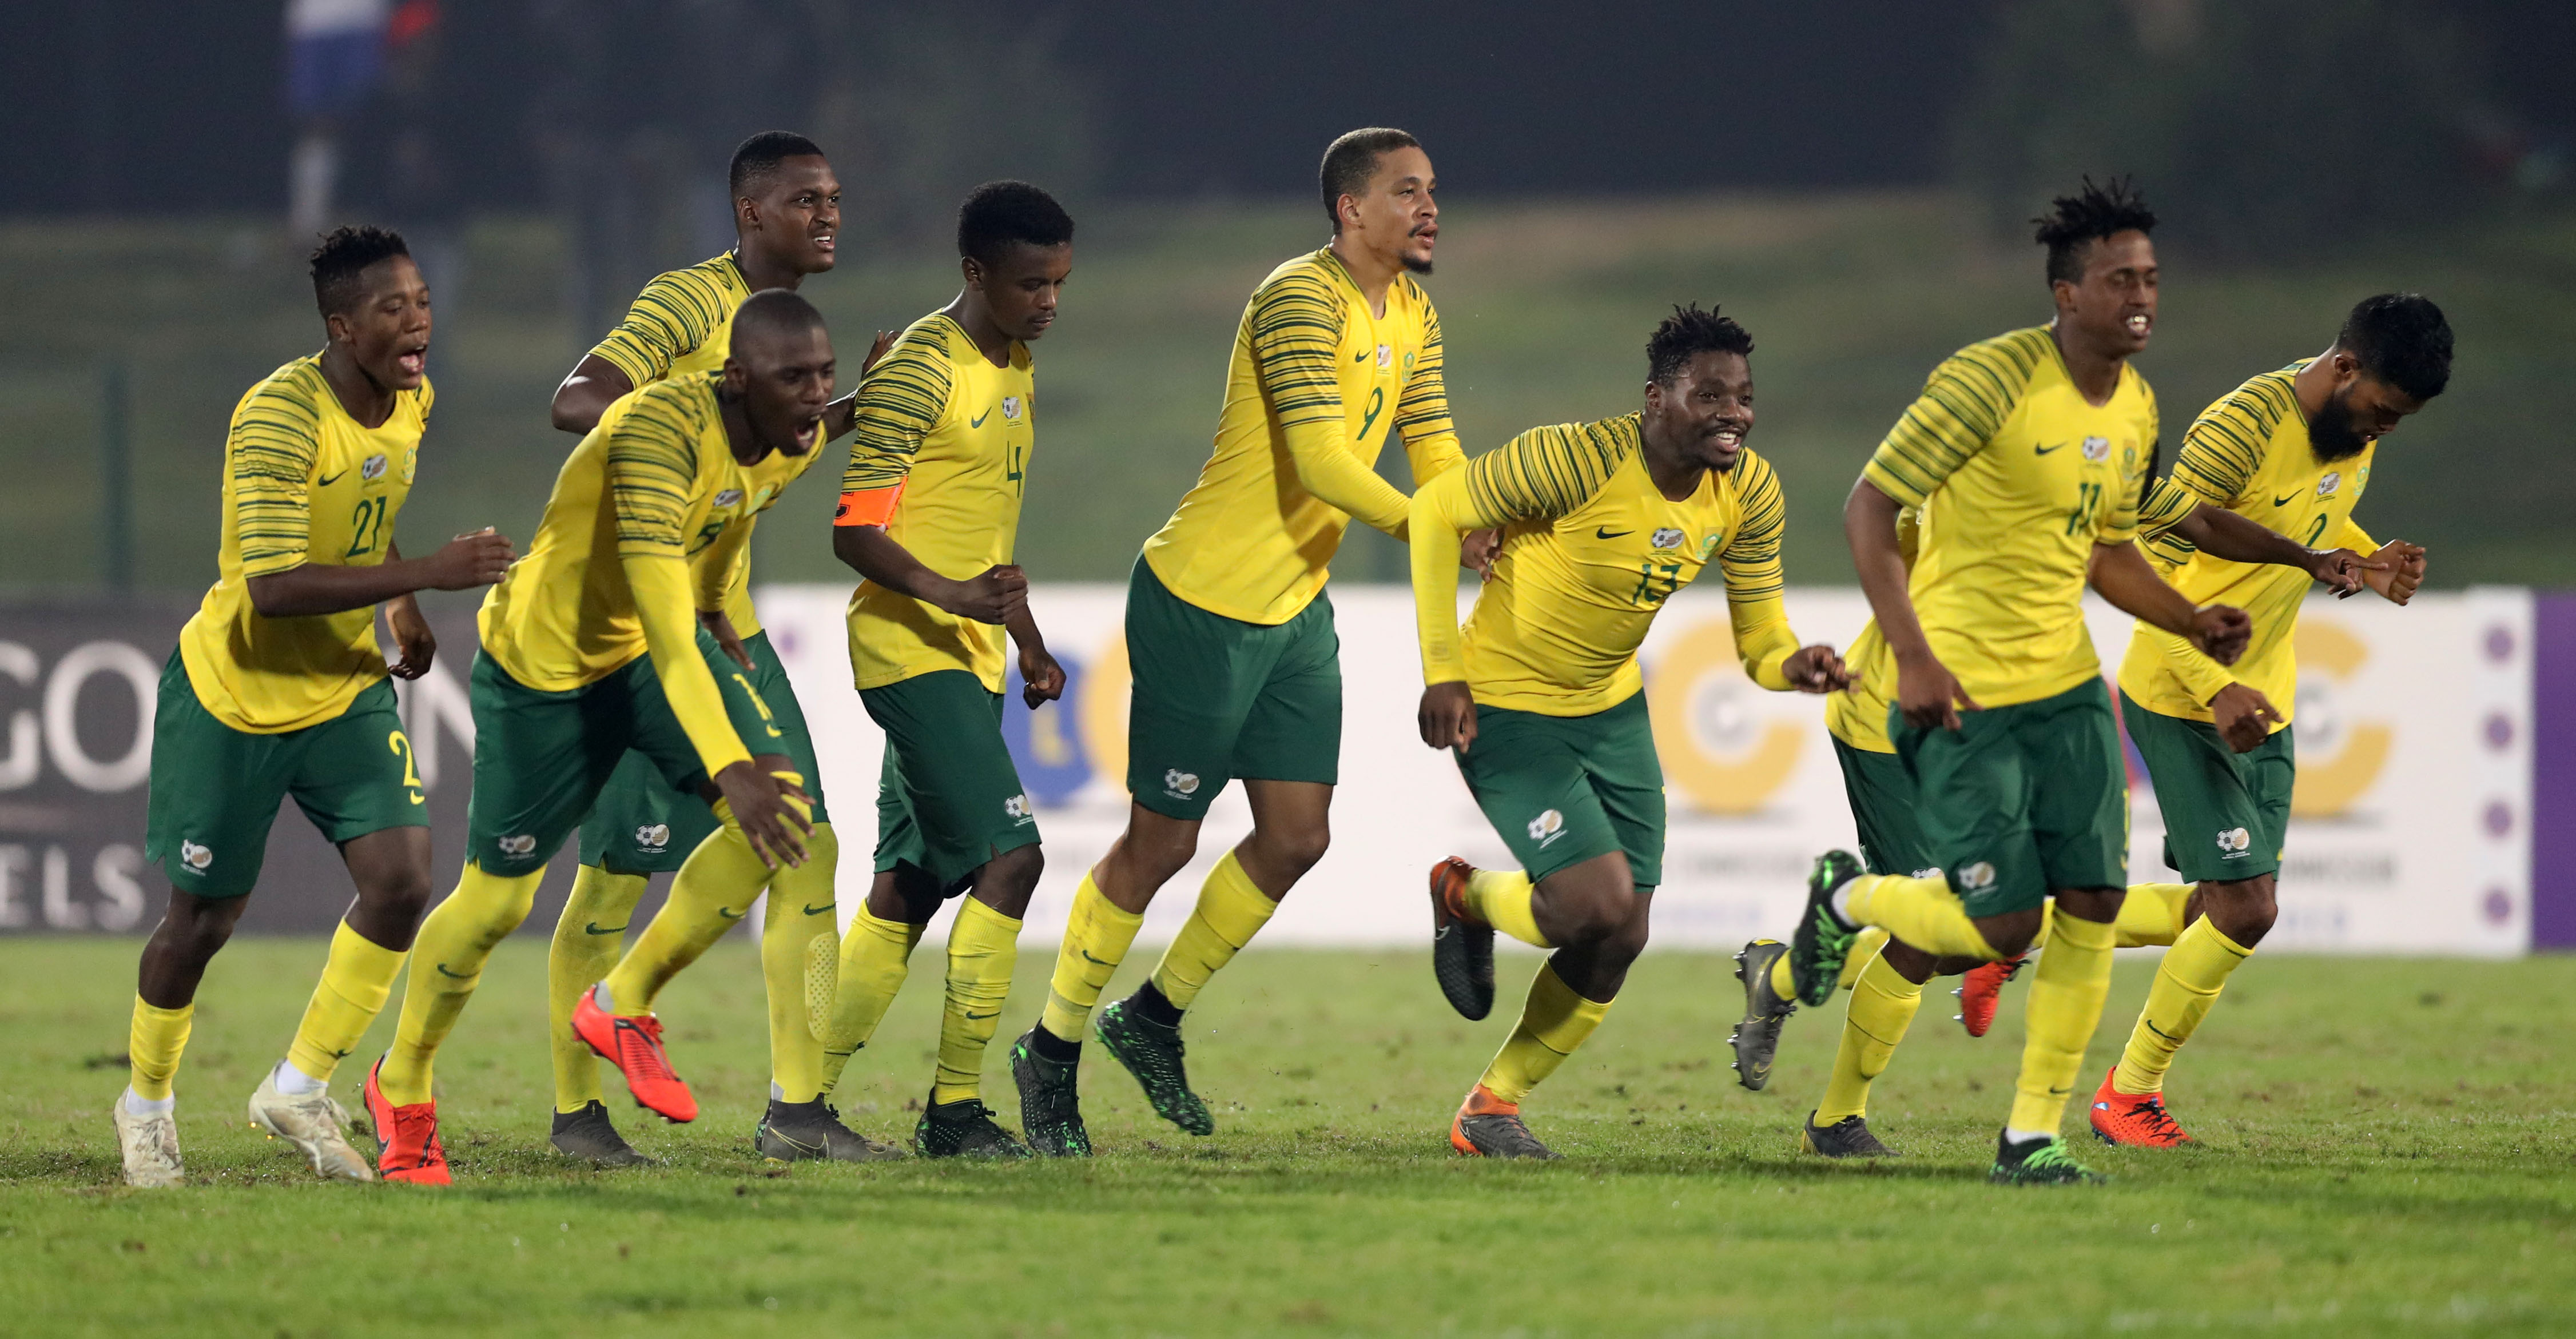 SA U-23s target Olympic glory ahead of Egypt match in Afcon - Sports Leo